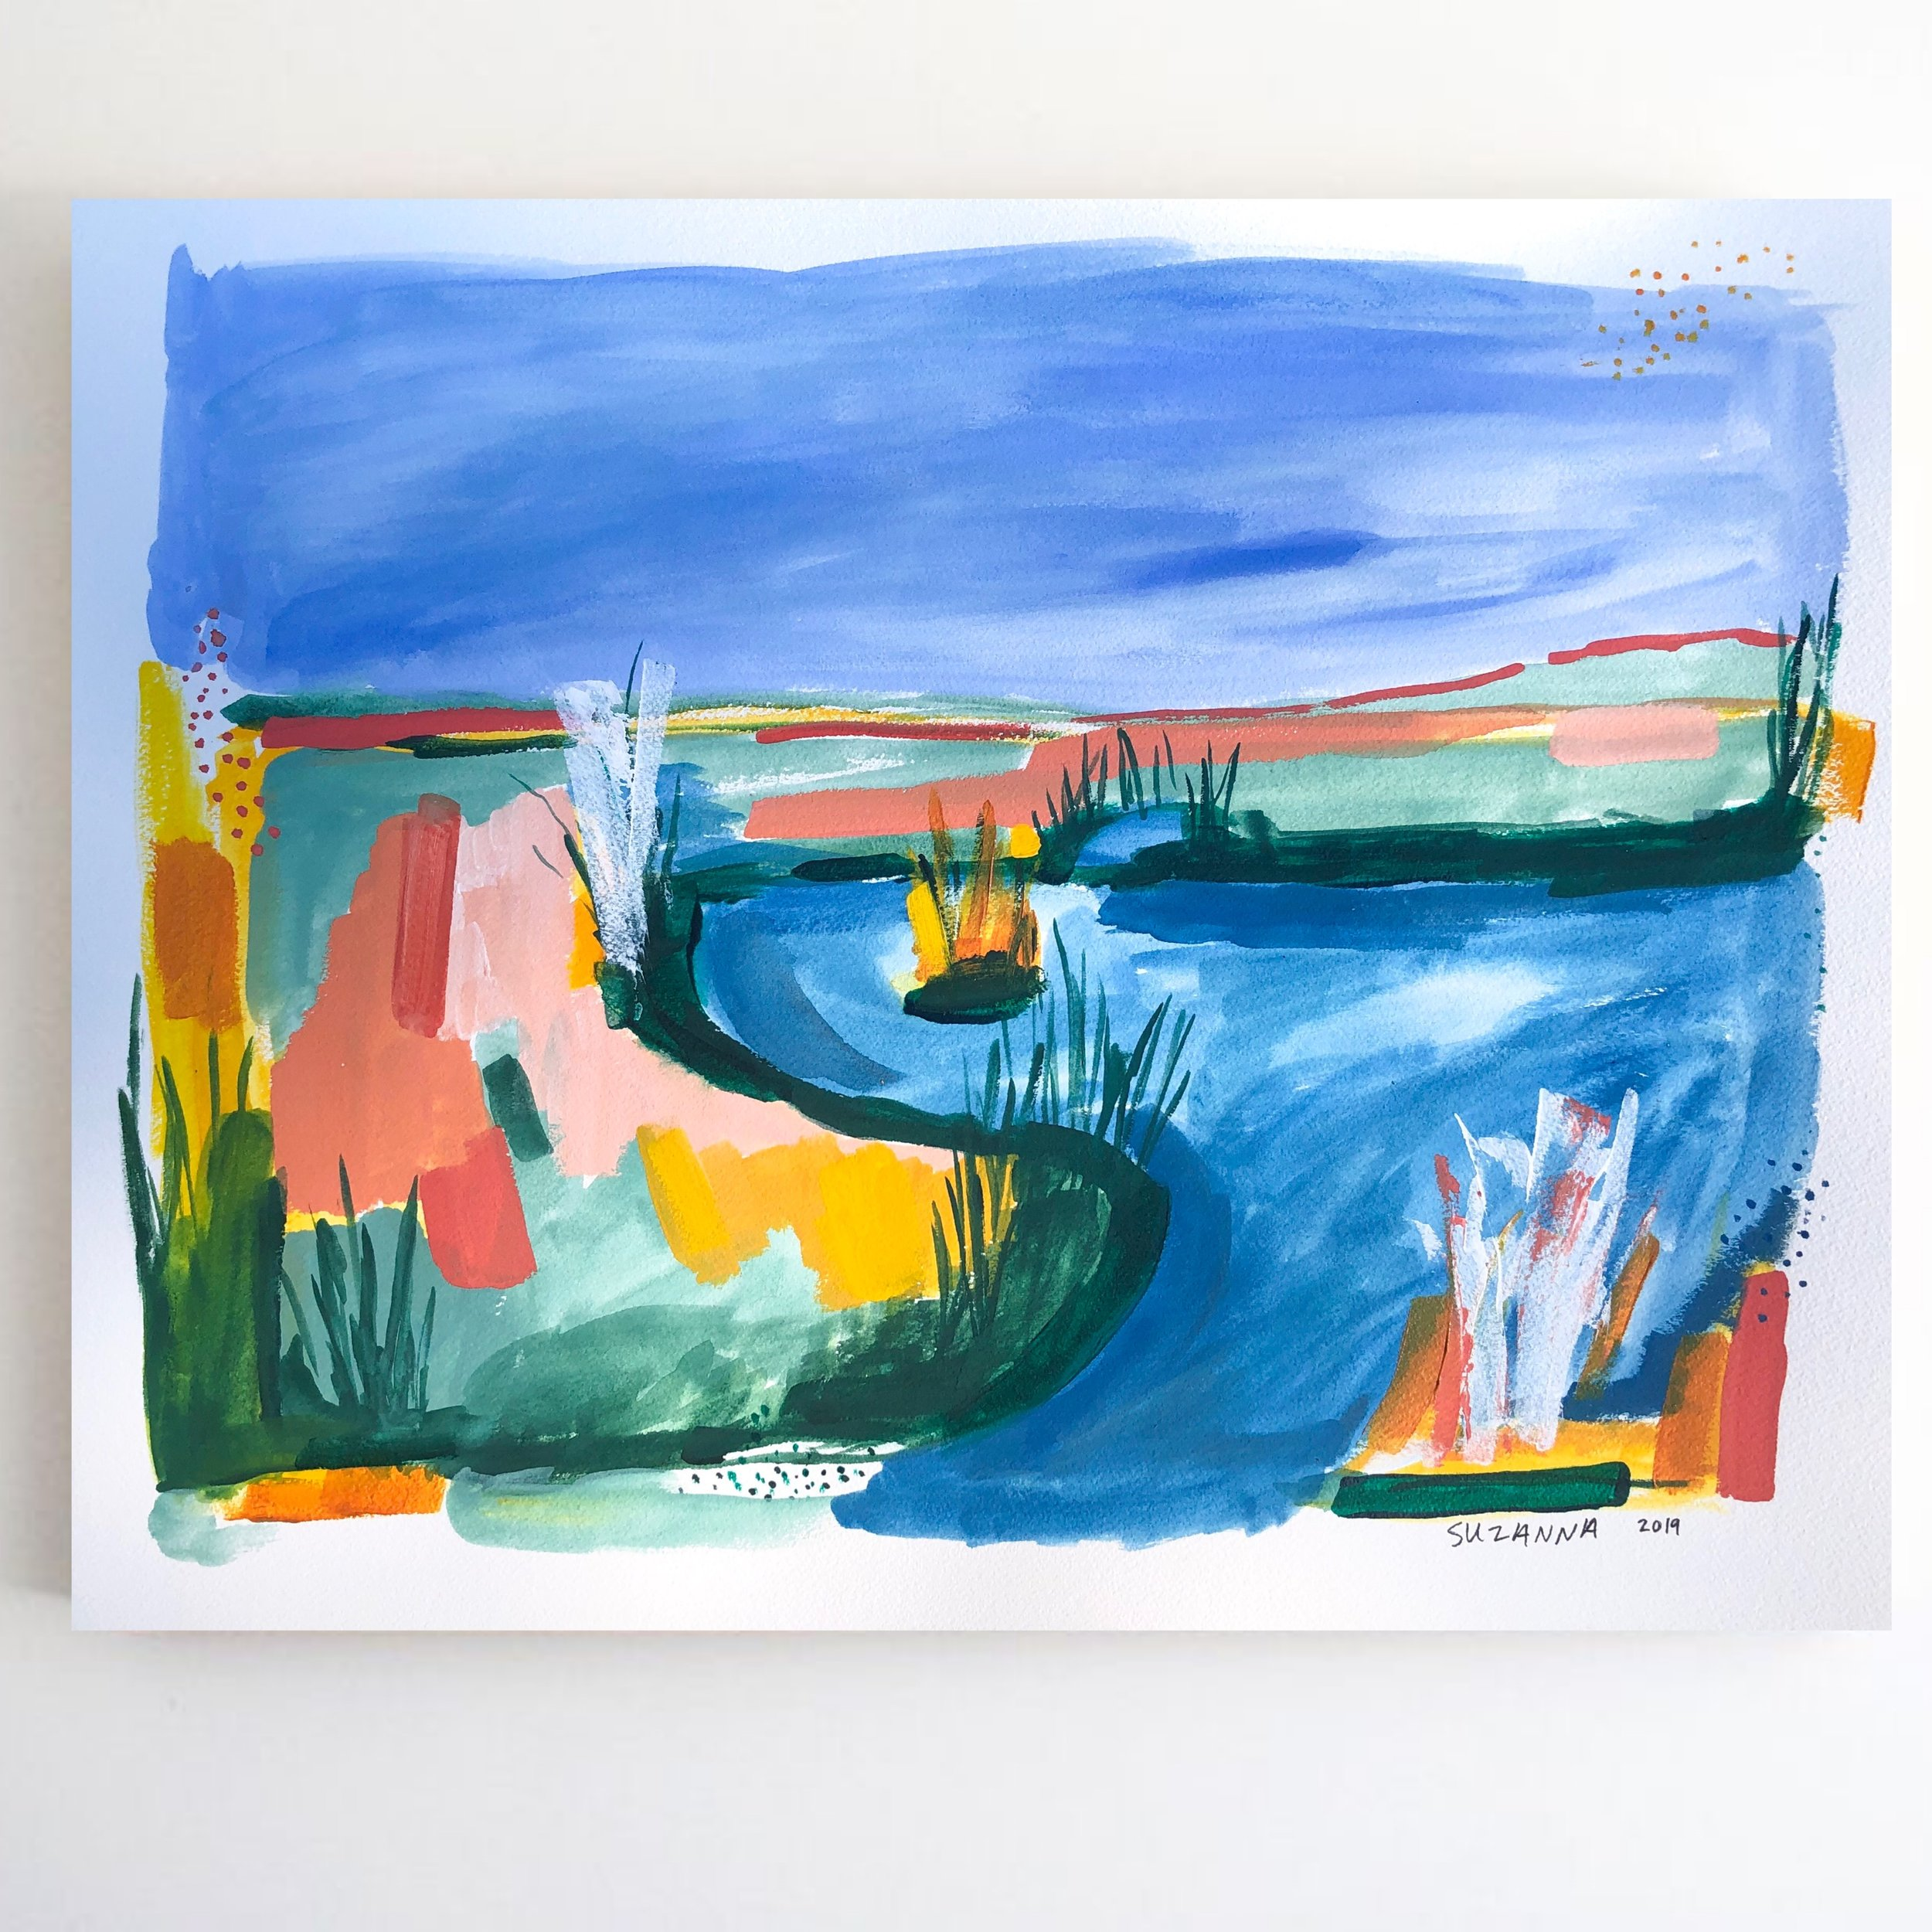 """Boat Day, 2019 - 16x20""""gouache and acrylic on papercomes framed in white$350"""